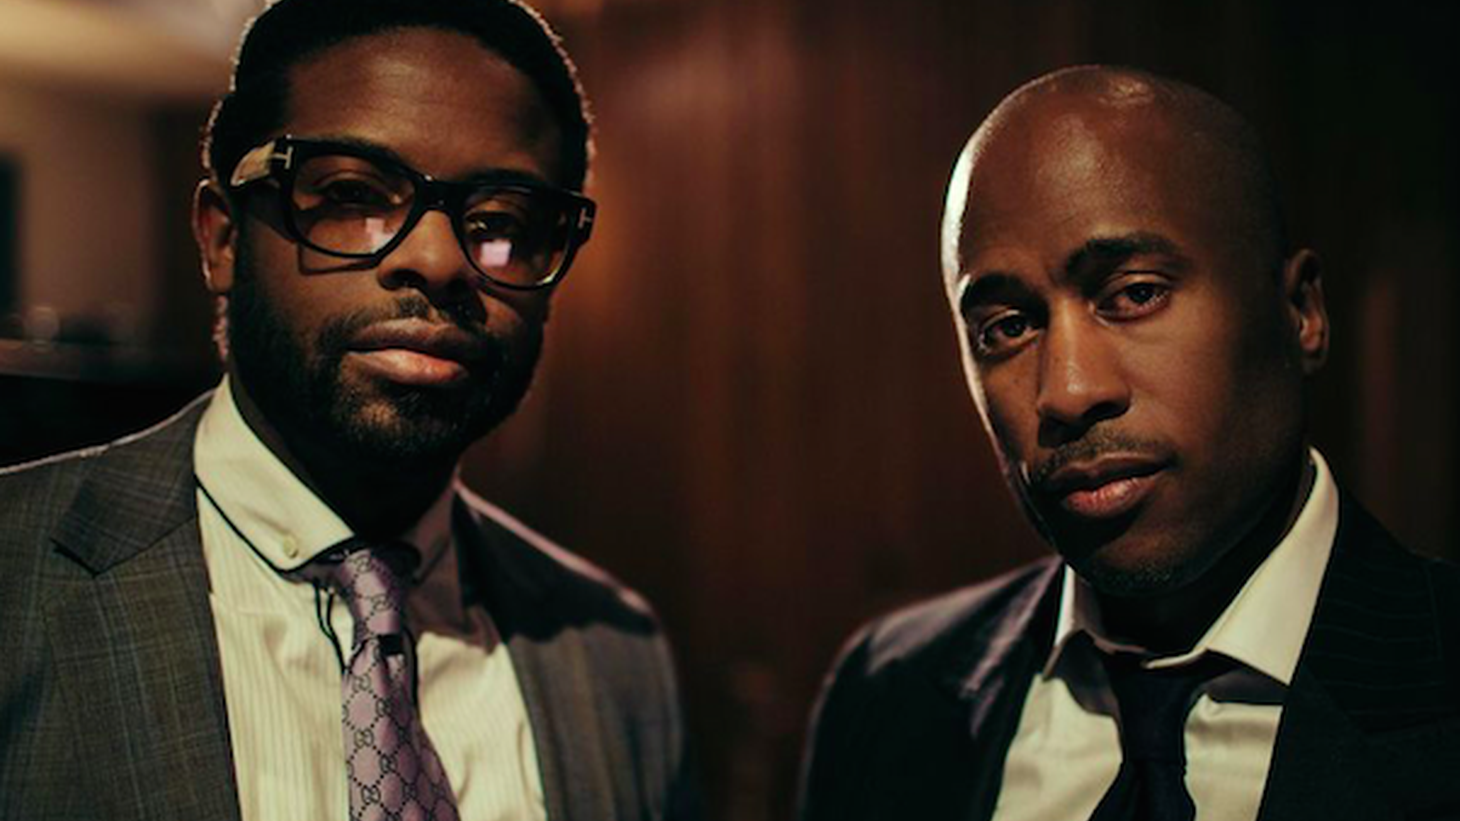 Two of hip-hop's most skilled composers Ali Shaheed Muhammad (of A Tribe Called Quest) and Adrian Younge have partnered as The Midnight Hour.